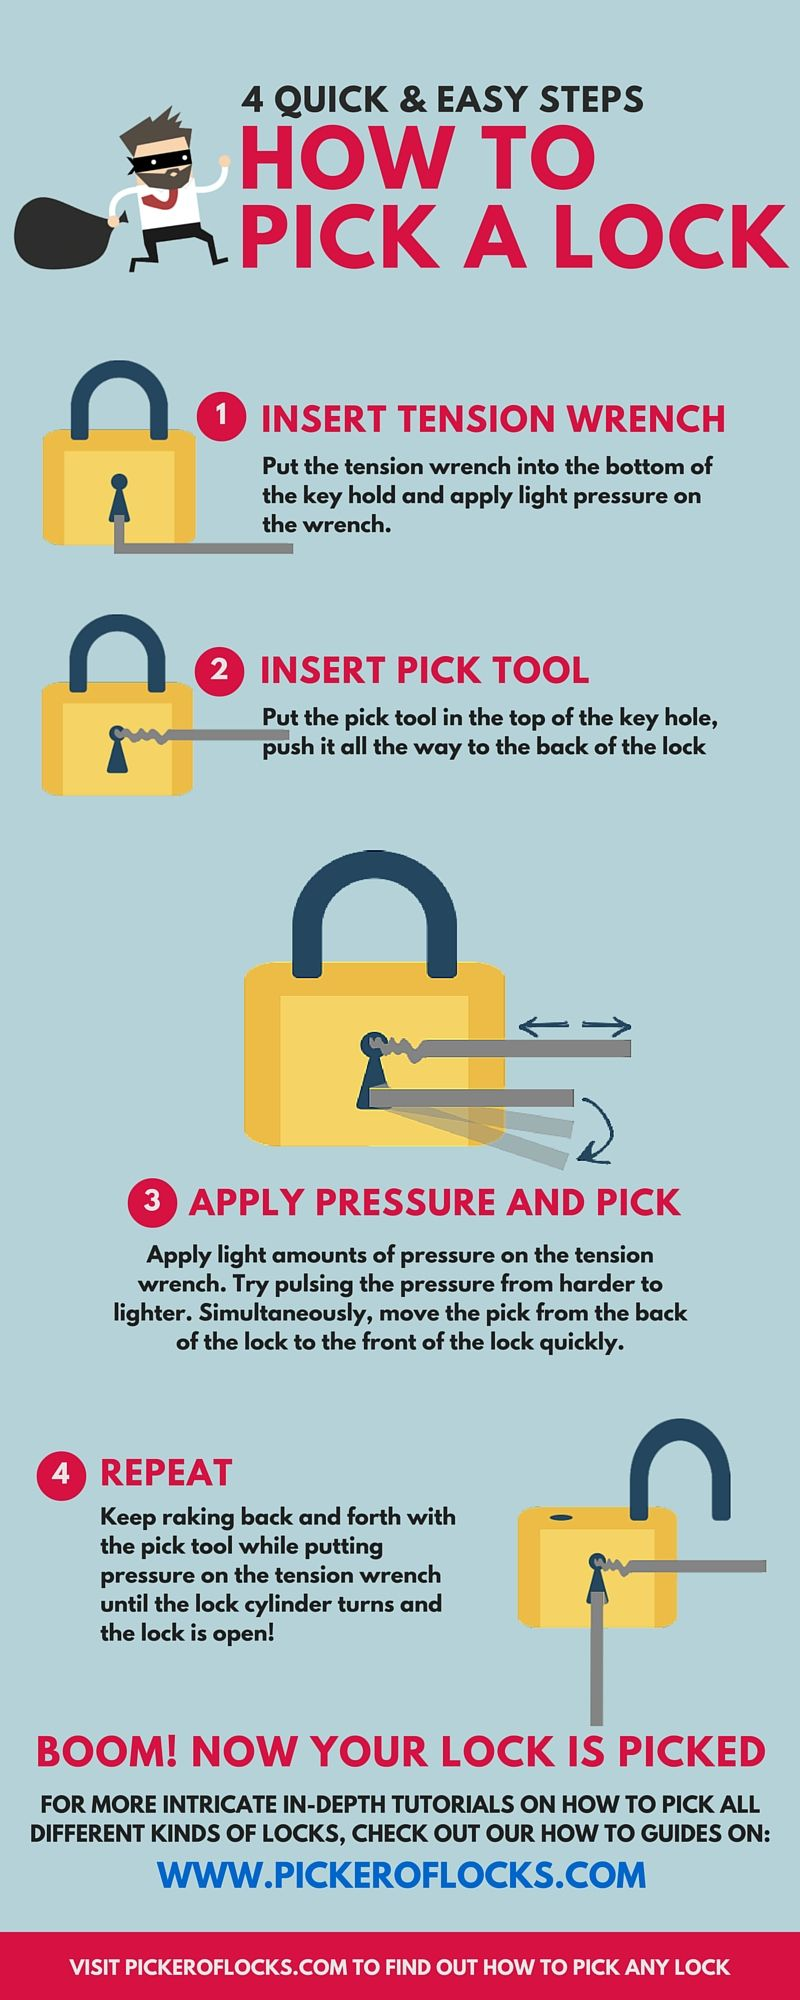 Infographic: 4 Quick & Easy Ways to Pick a Lock